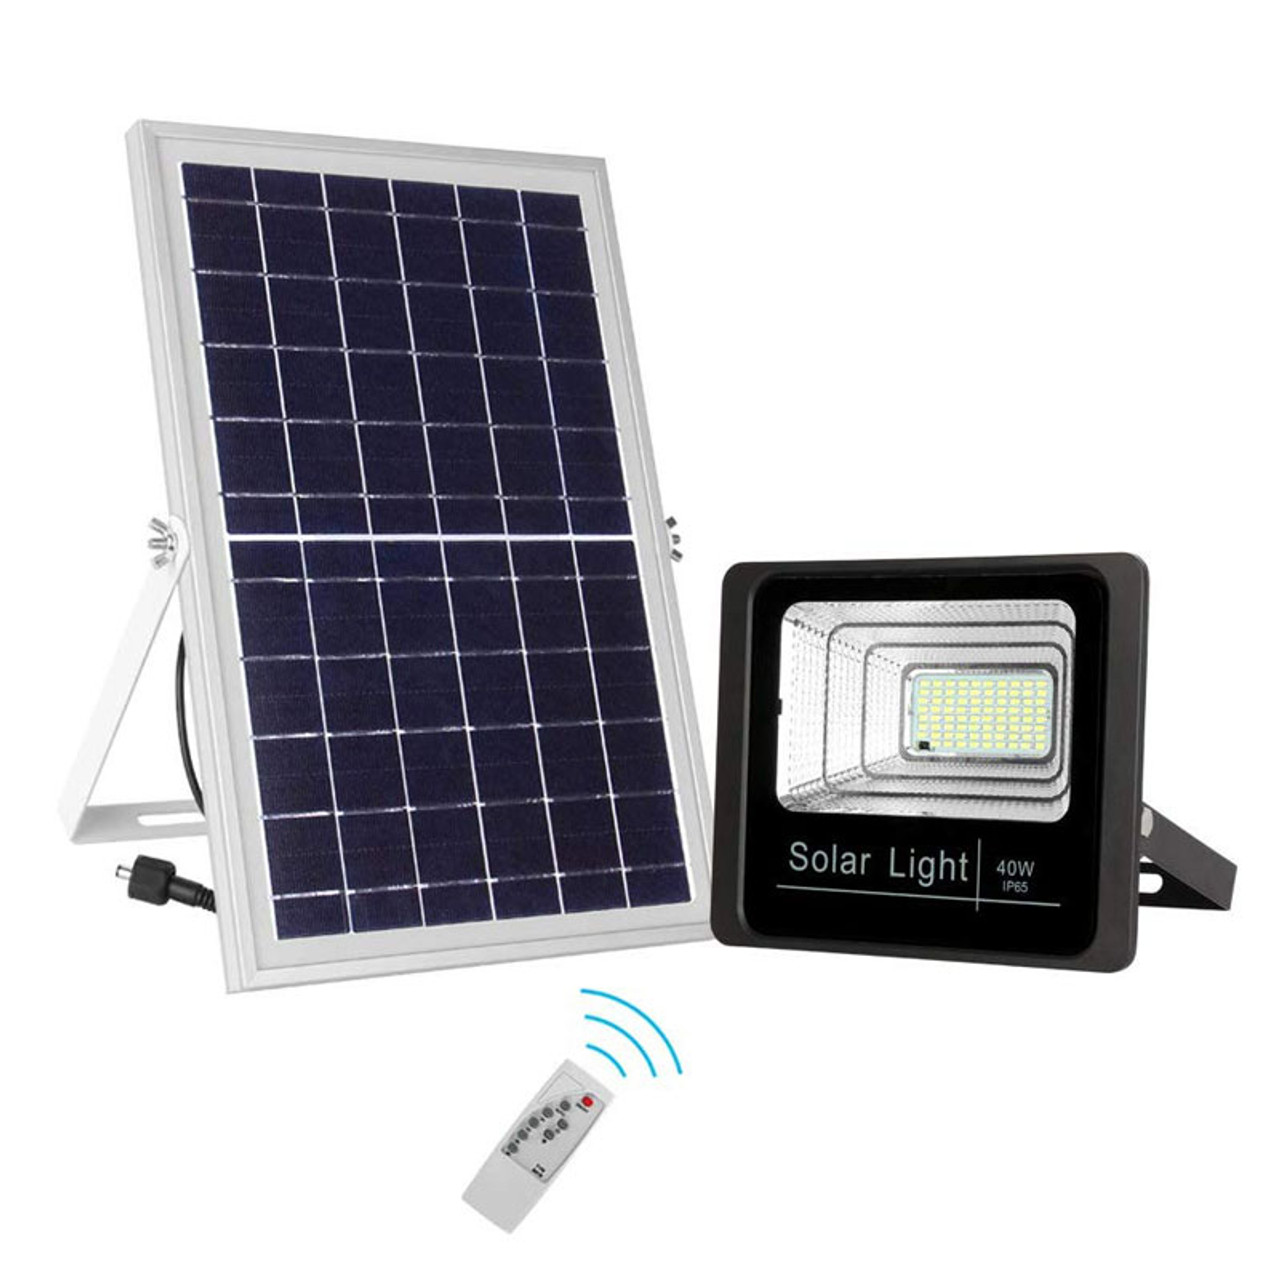 Led Solar Powered 40 Watt High Output Flood Light With Solar Panel Dimmable Dusk To Dawn On Off Sensor Ip67 Five Year Warranty Led Global Supply